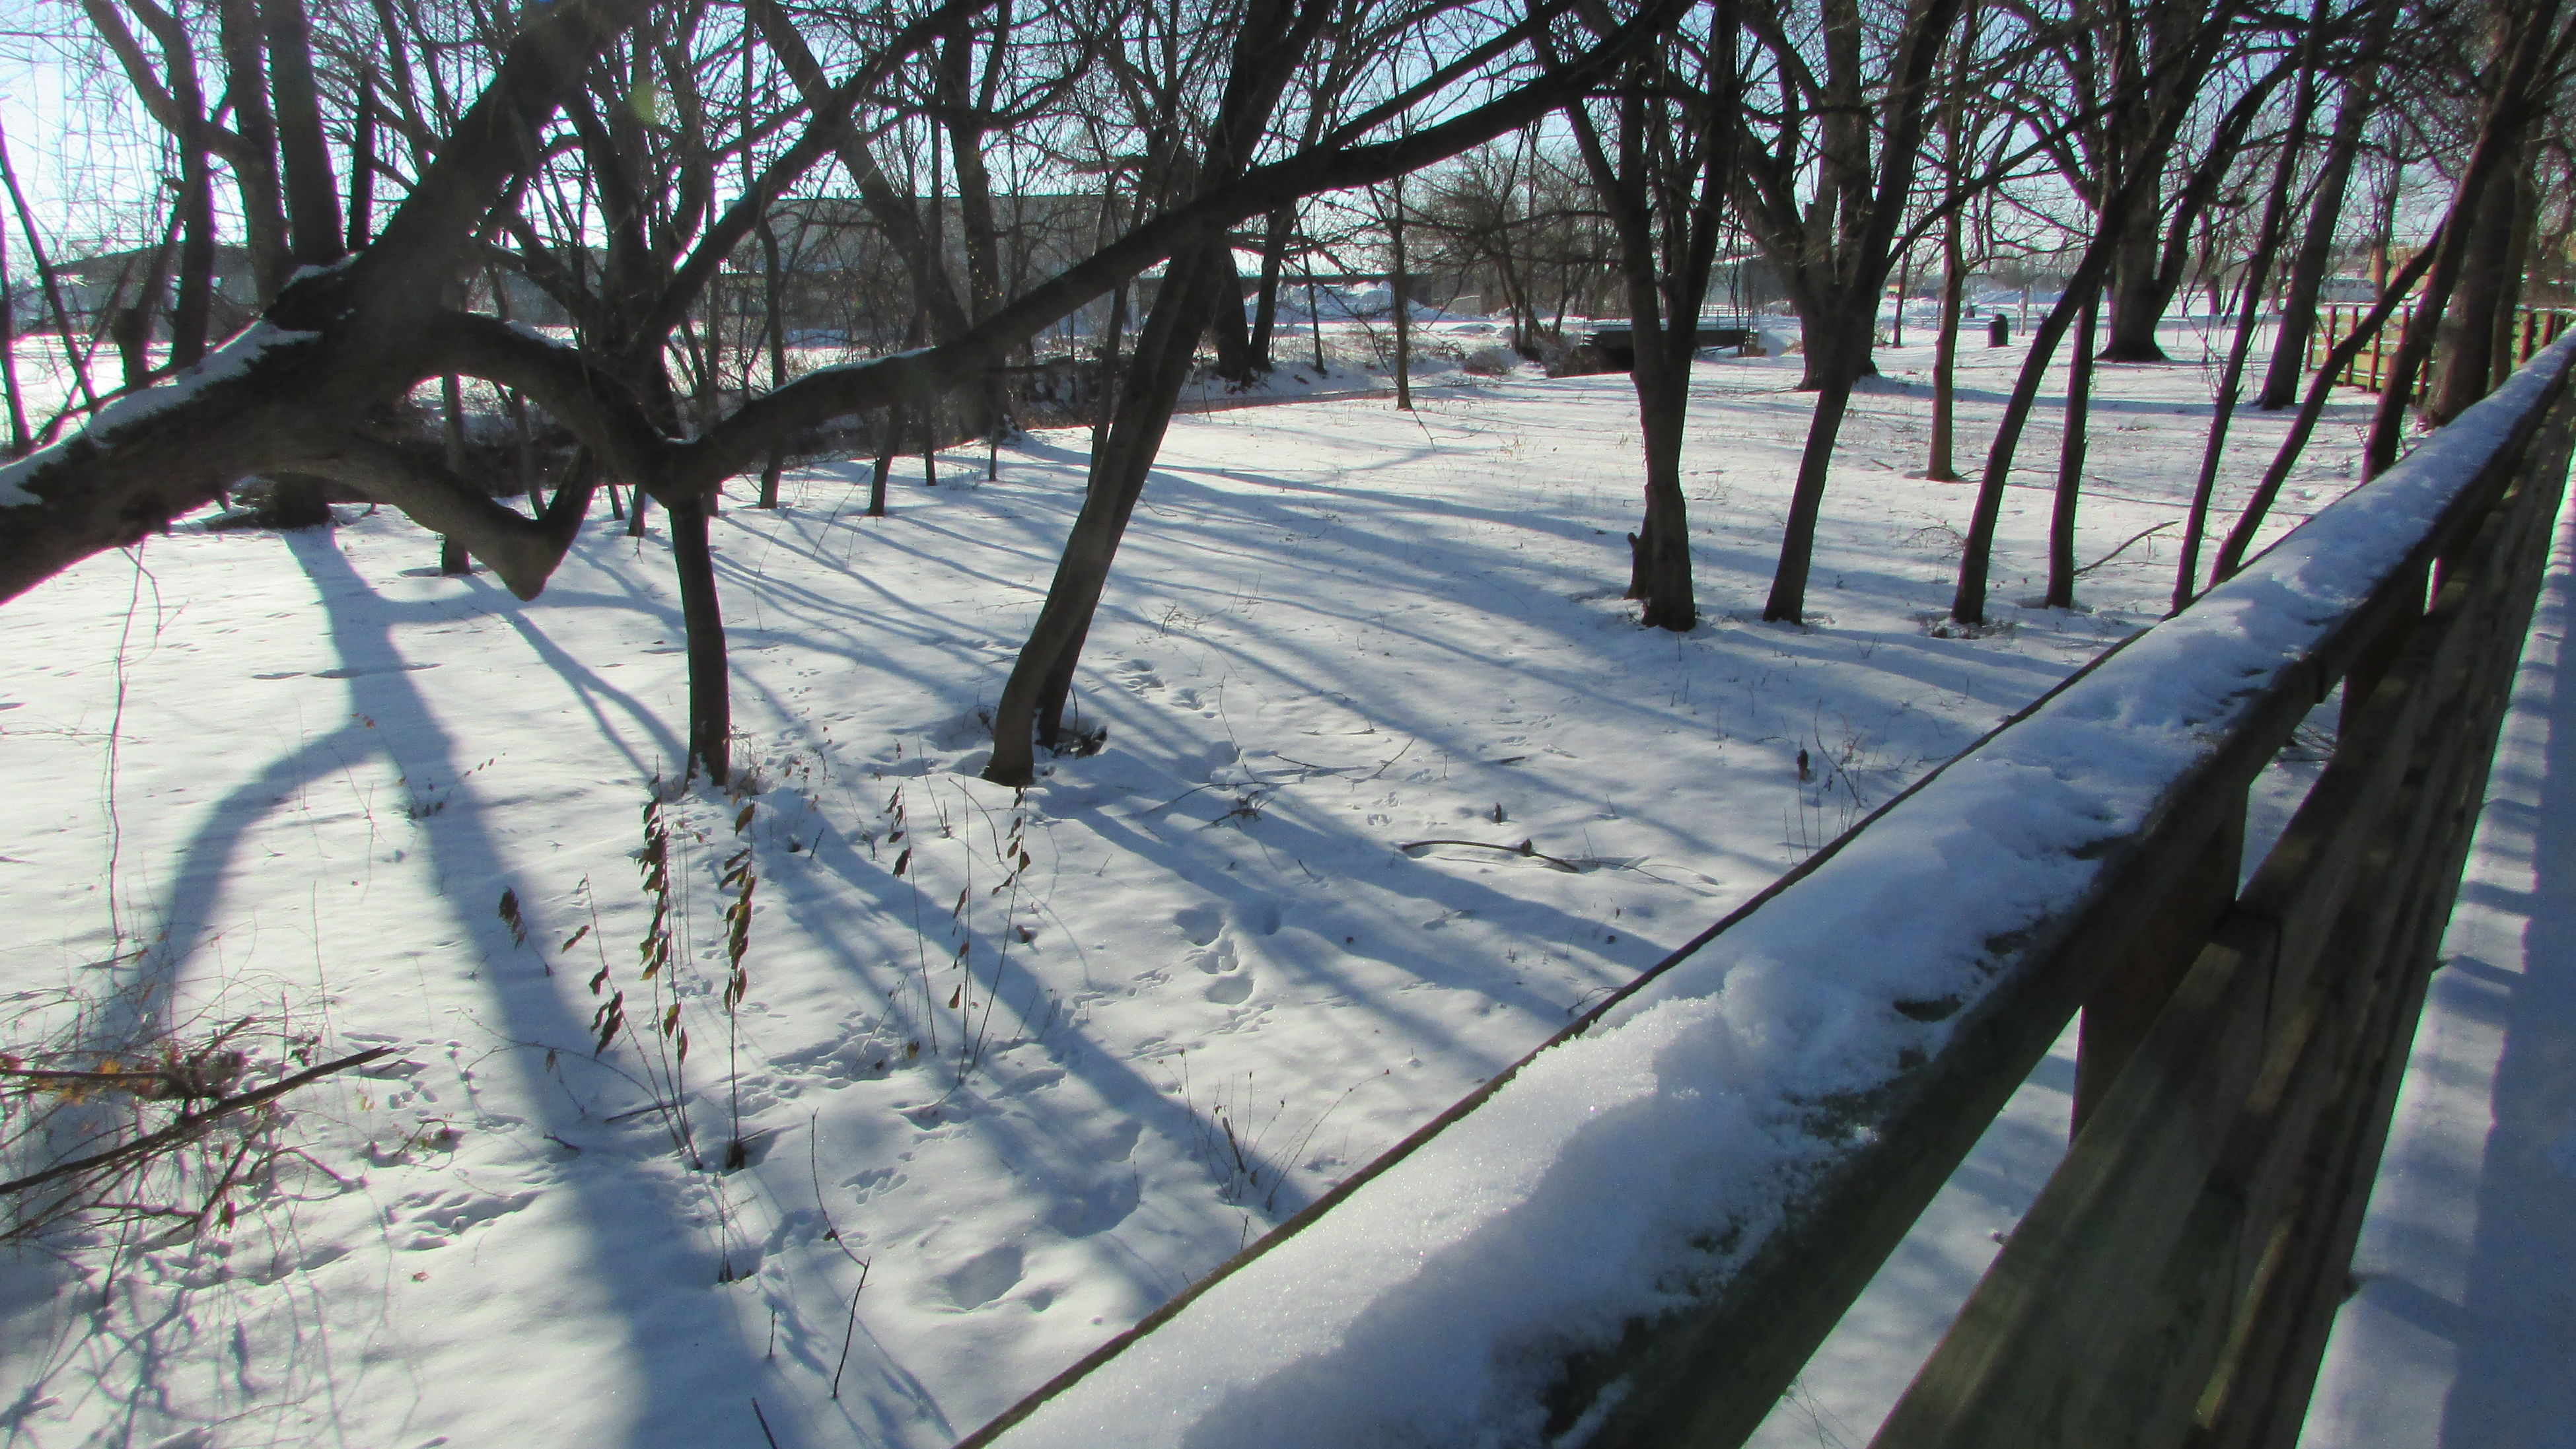 Wintery Walkway Sun And Shadow Alone Time No People Snow Day Tranquility Clam River Boardwalk Cadillac Michigan